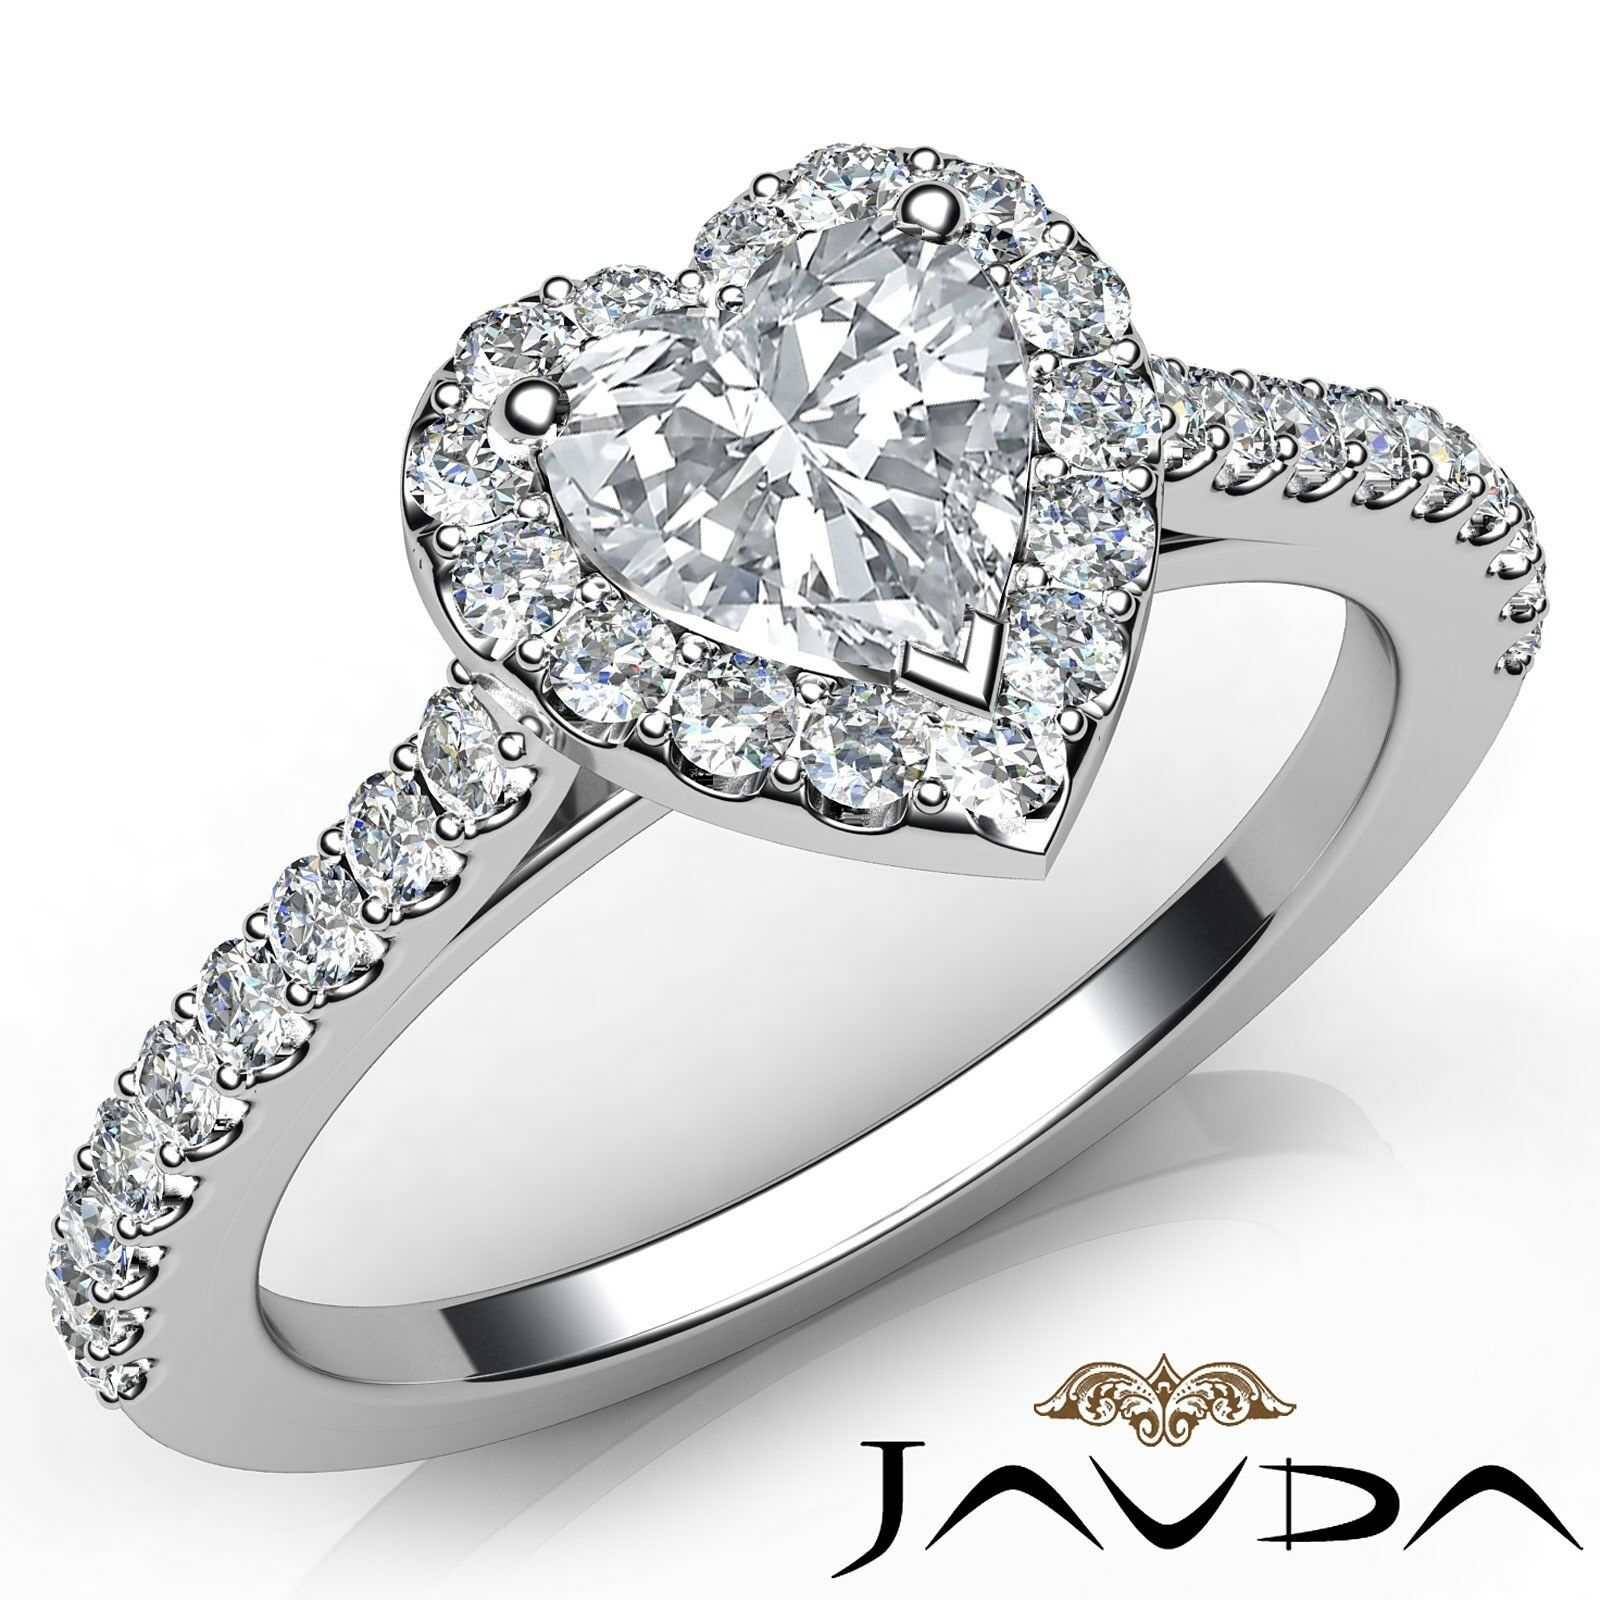 1.25ctw U Cut Prong Set Heart Diamond Engagement Ring GIA G-VS1 White Gold Rings